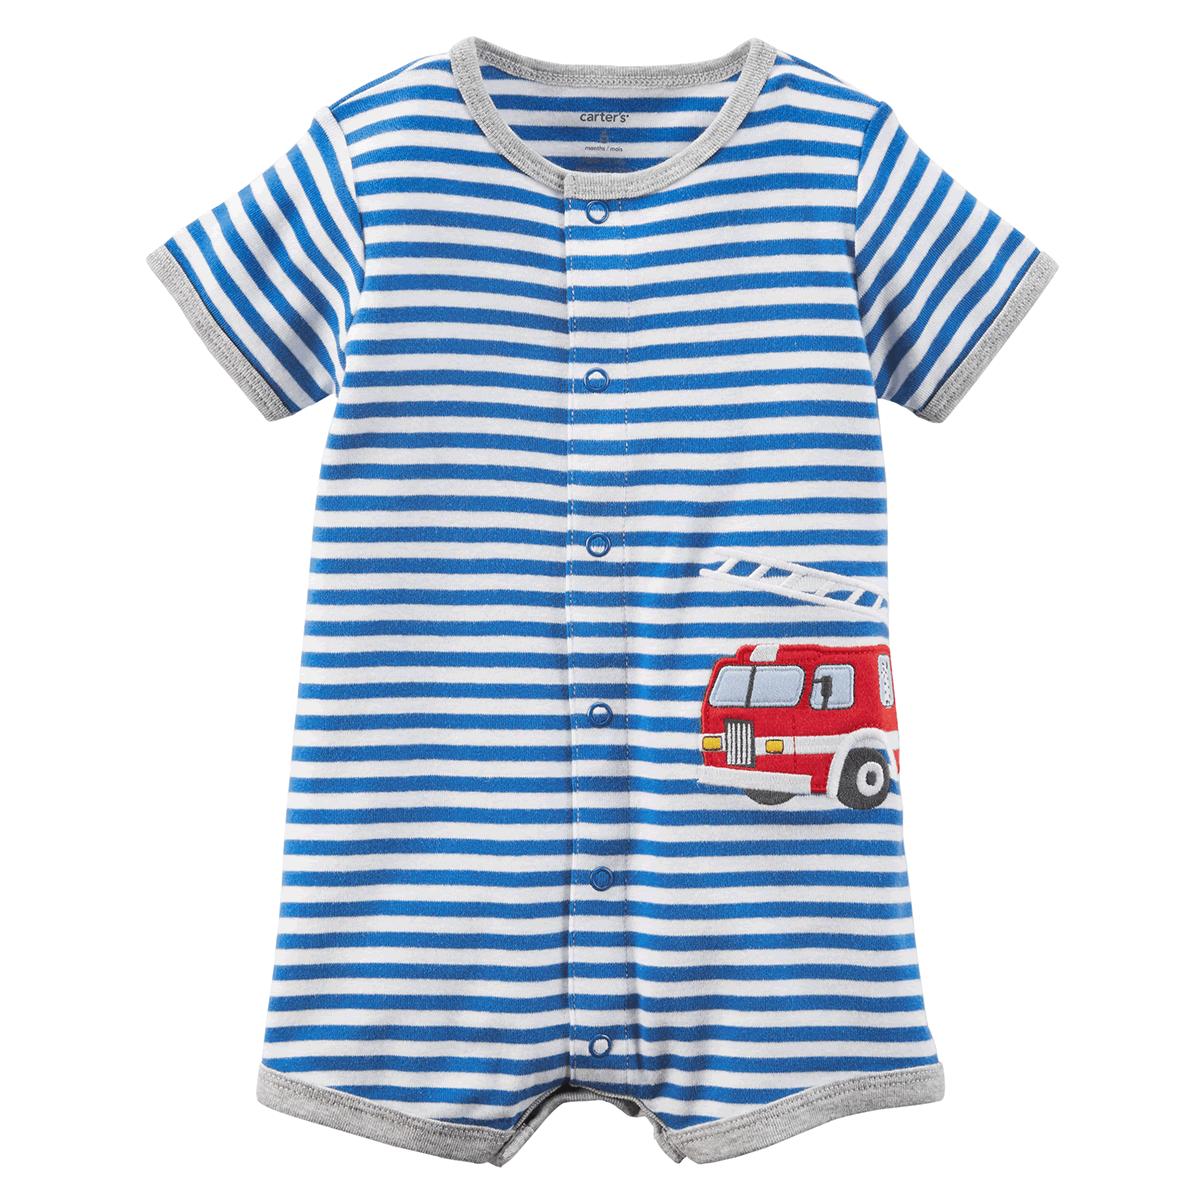 Carter\'s Baby Clothes - Macy\'s